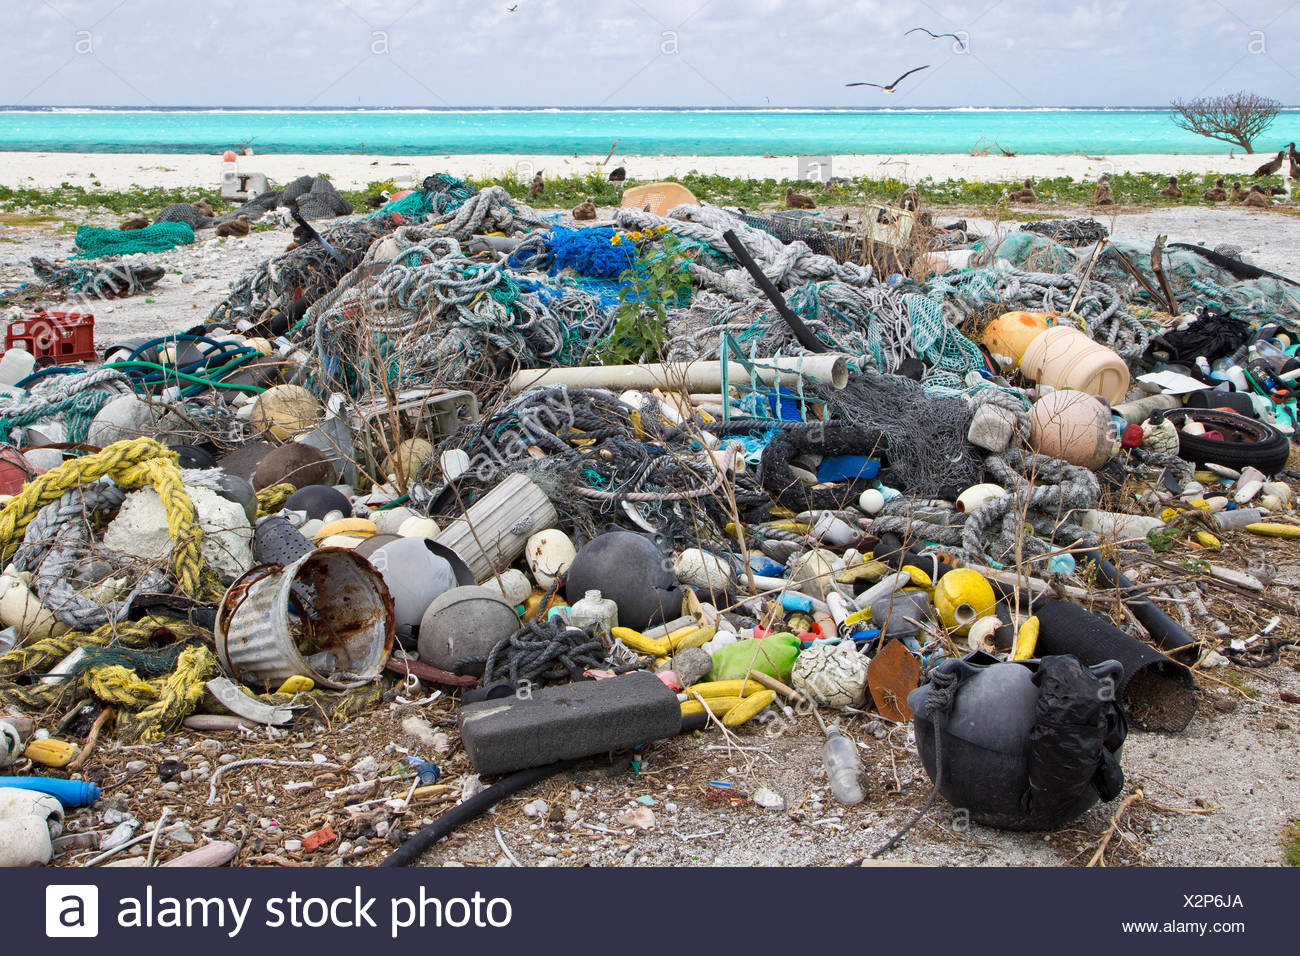 Plastic garbage collected research plot to assess plastic pollution Eastern Island Midway Atoll National Wildlife Refuge - Stock Image